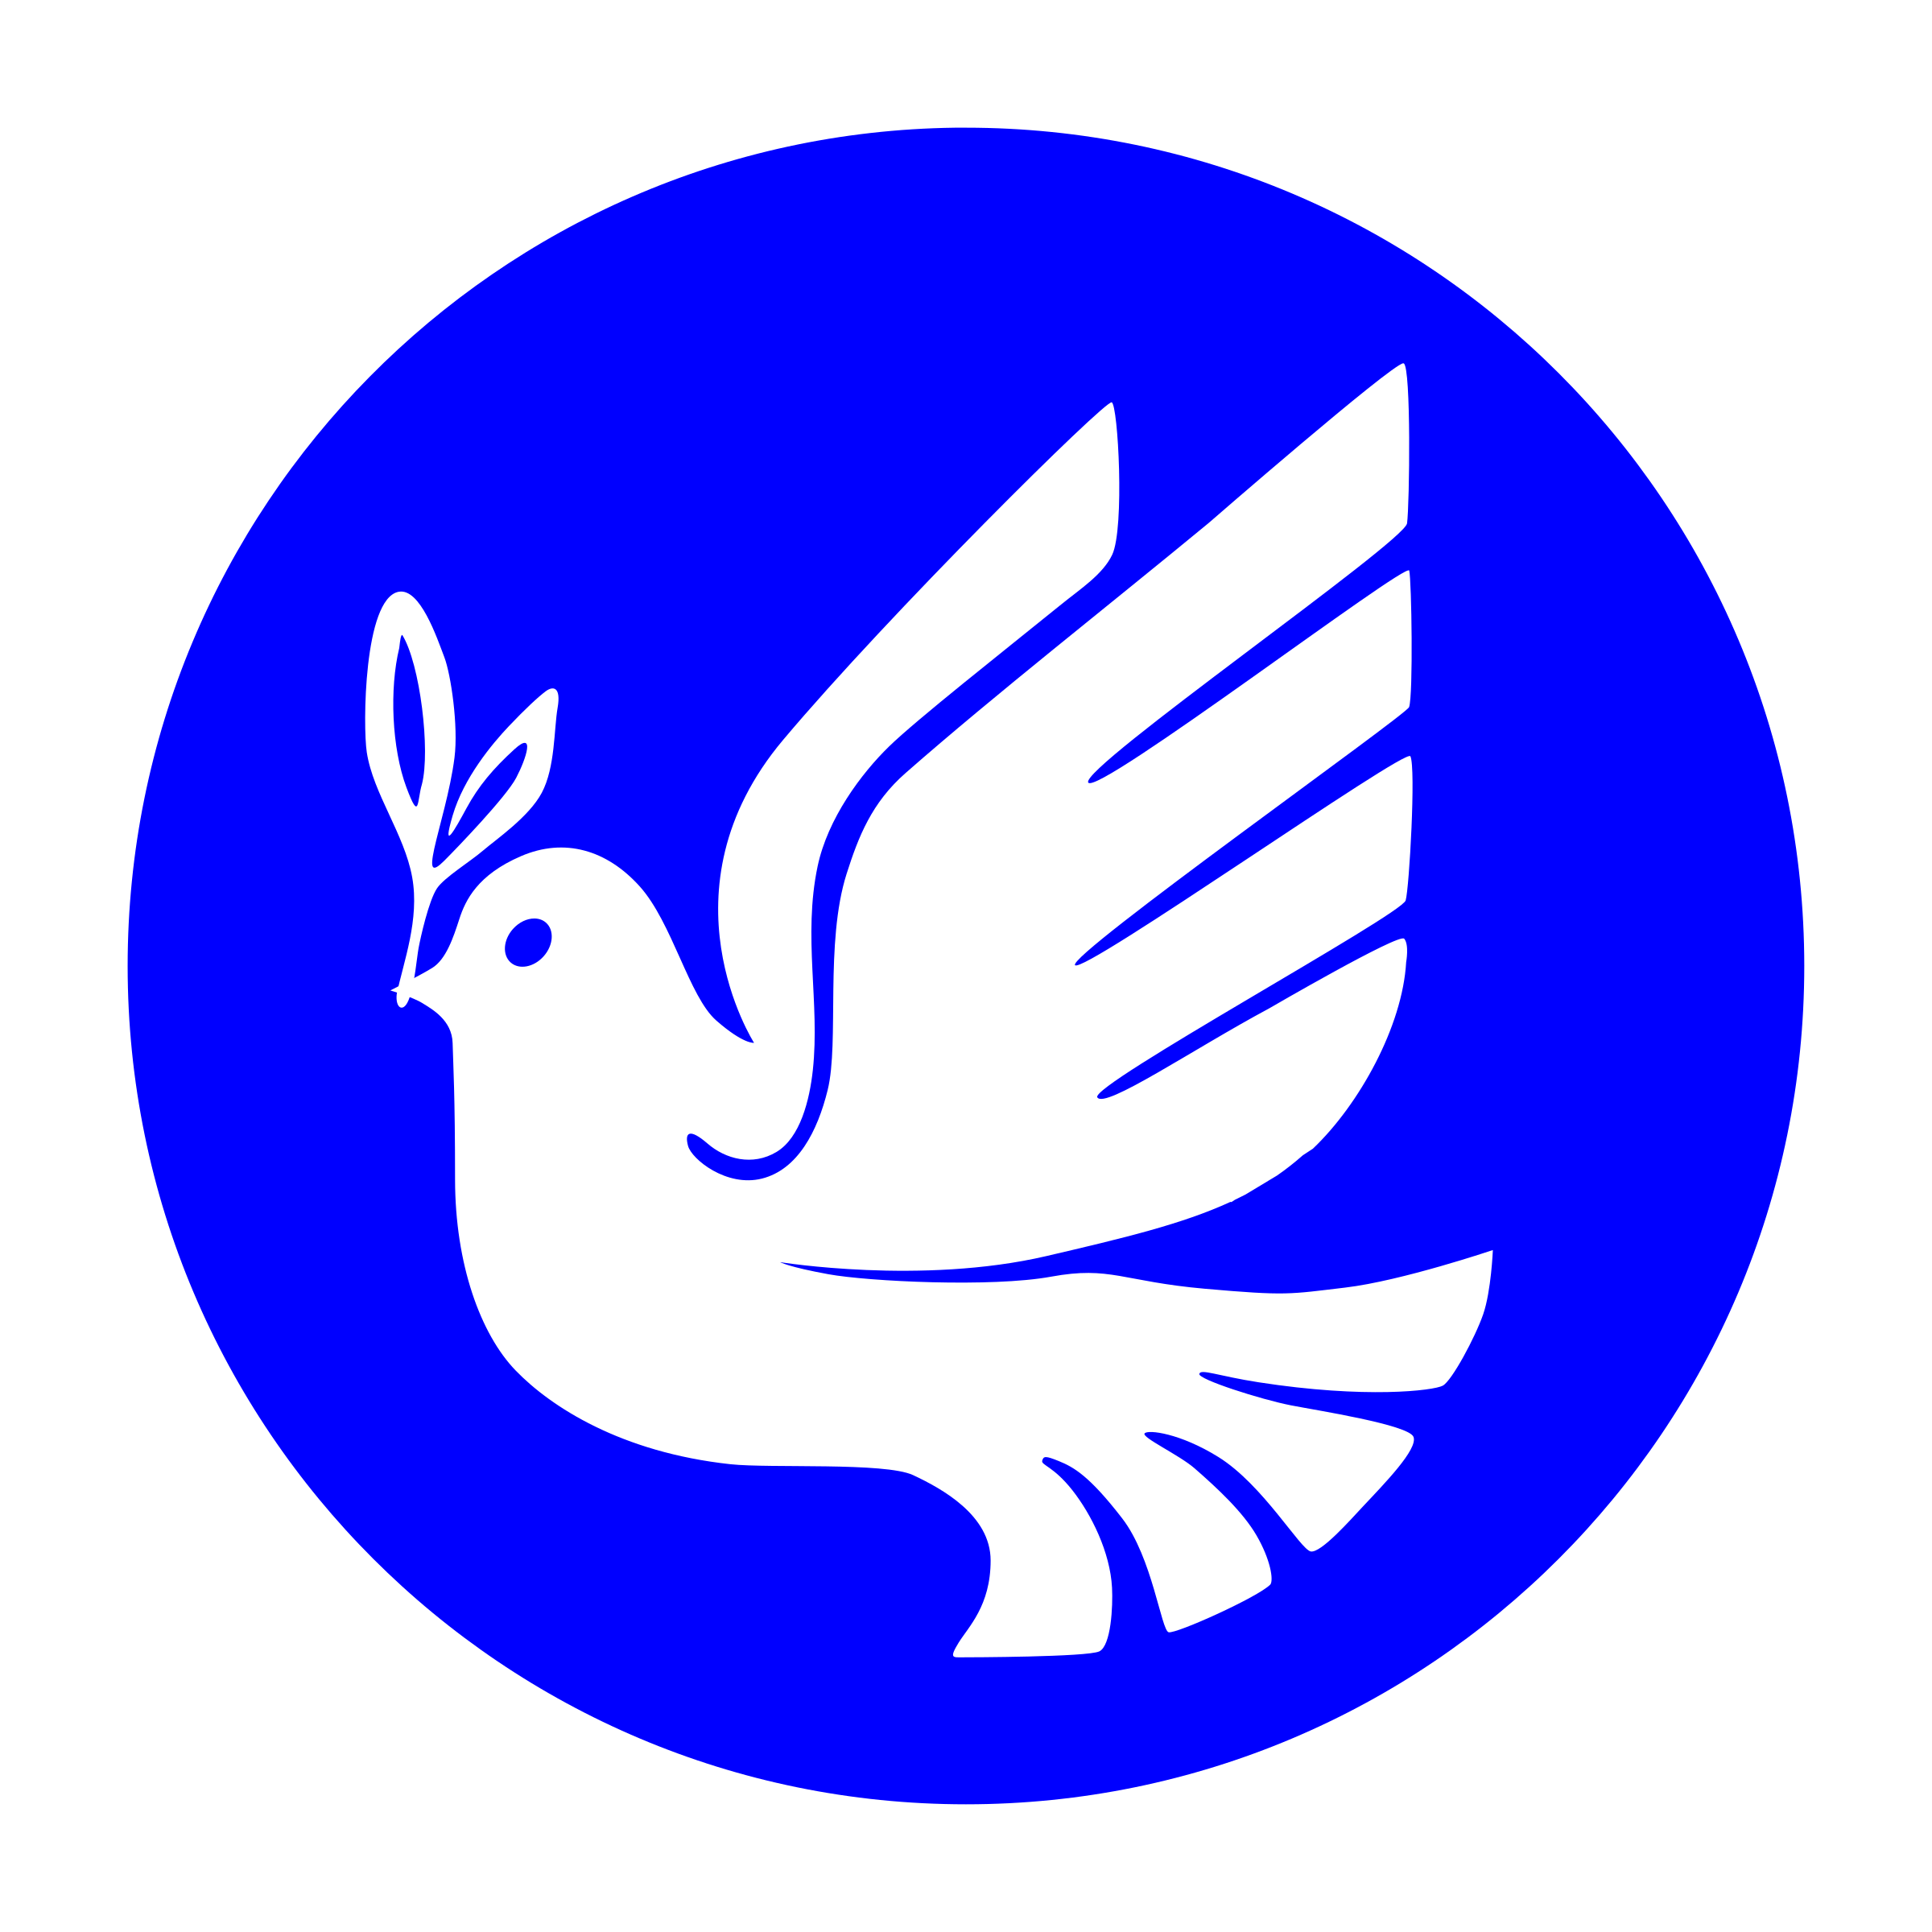 Fight for big image. Peace clipart symbolism